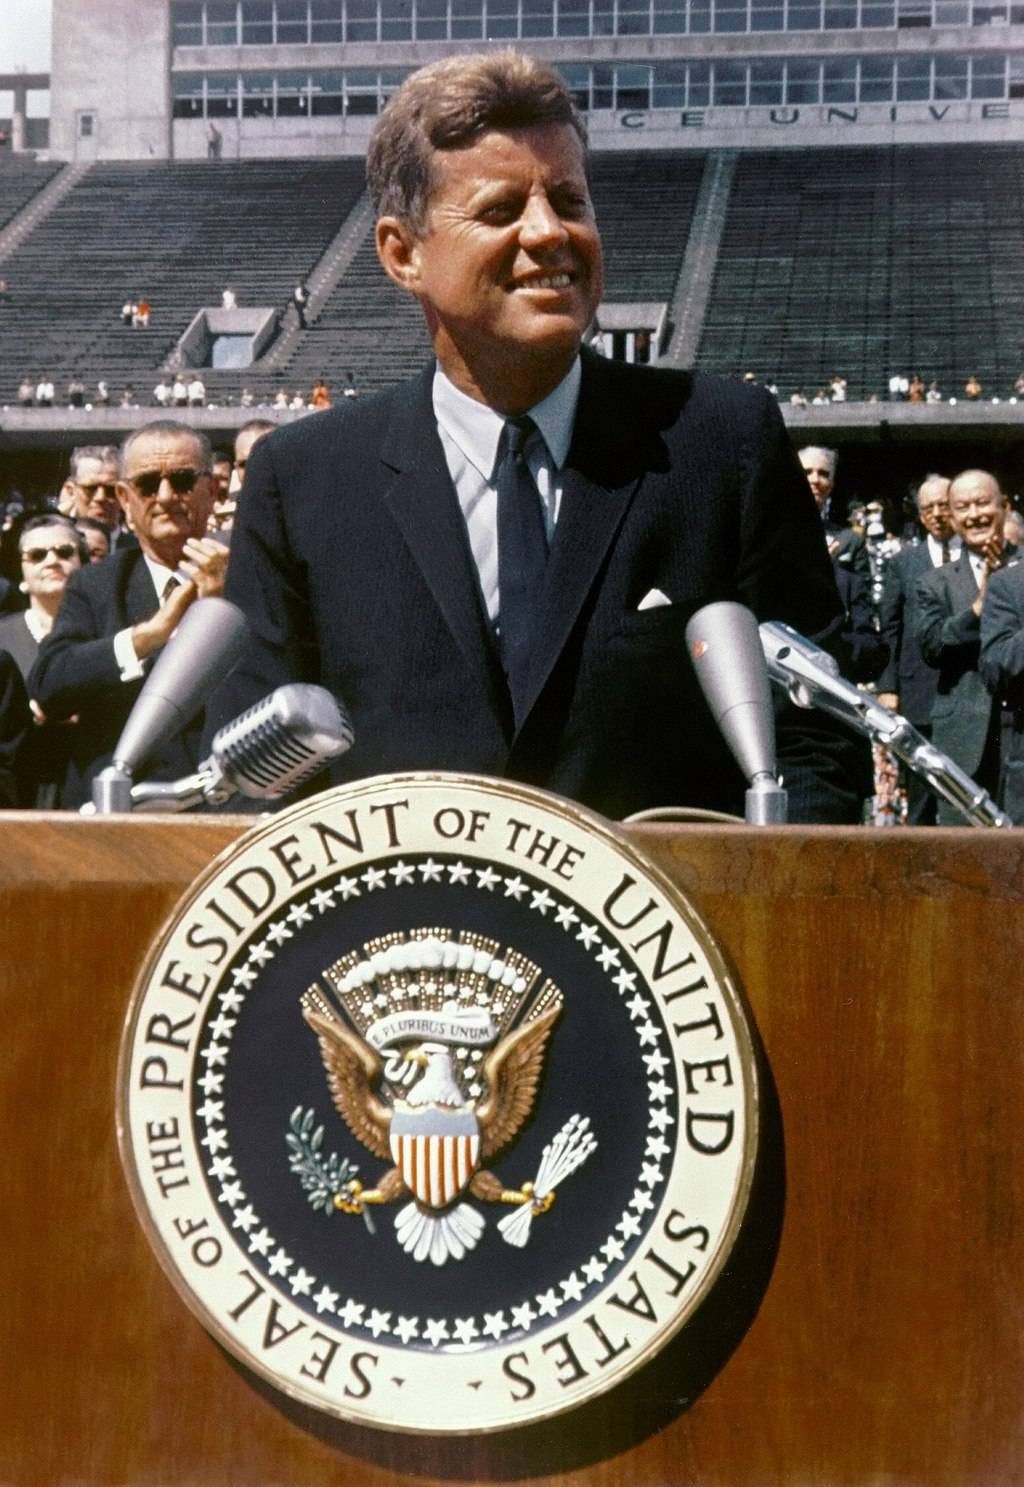 John Kennedy Moon speech